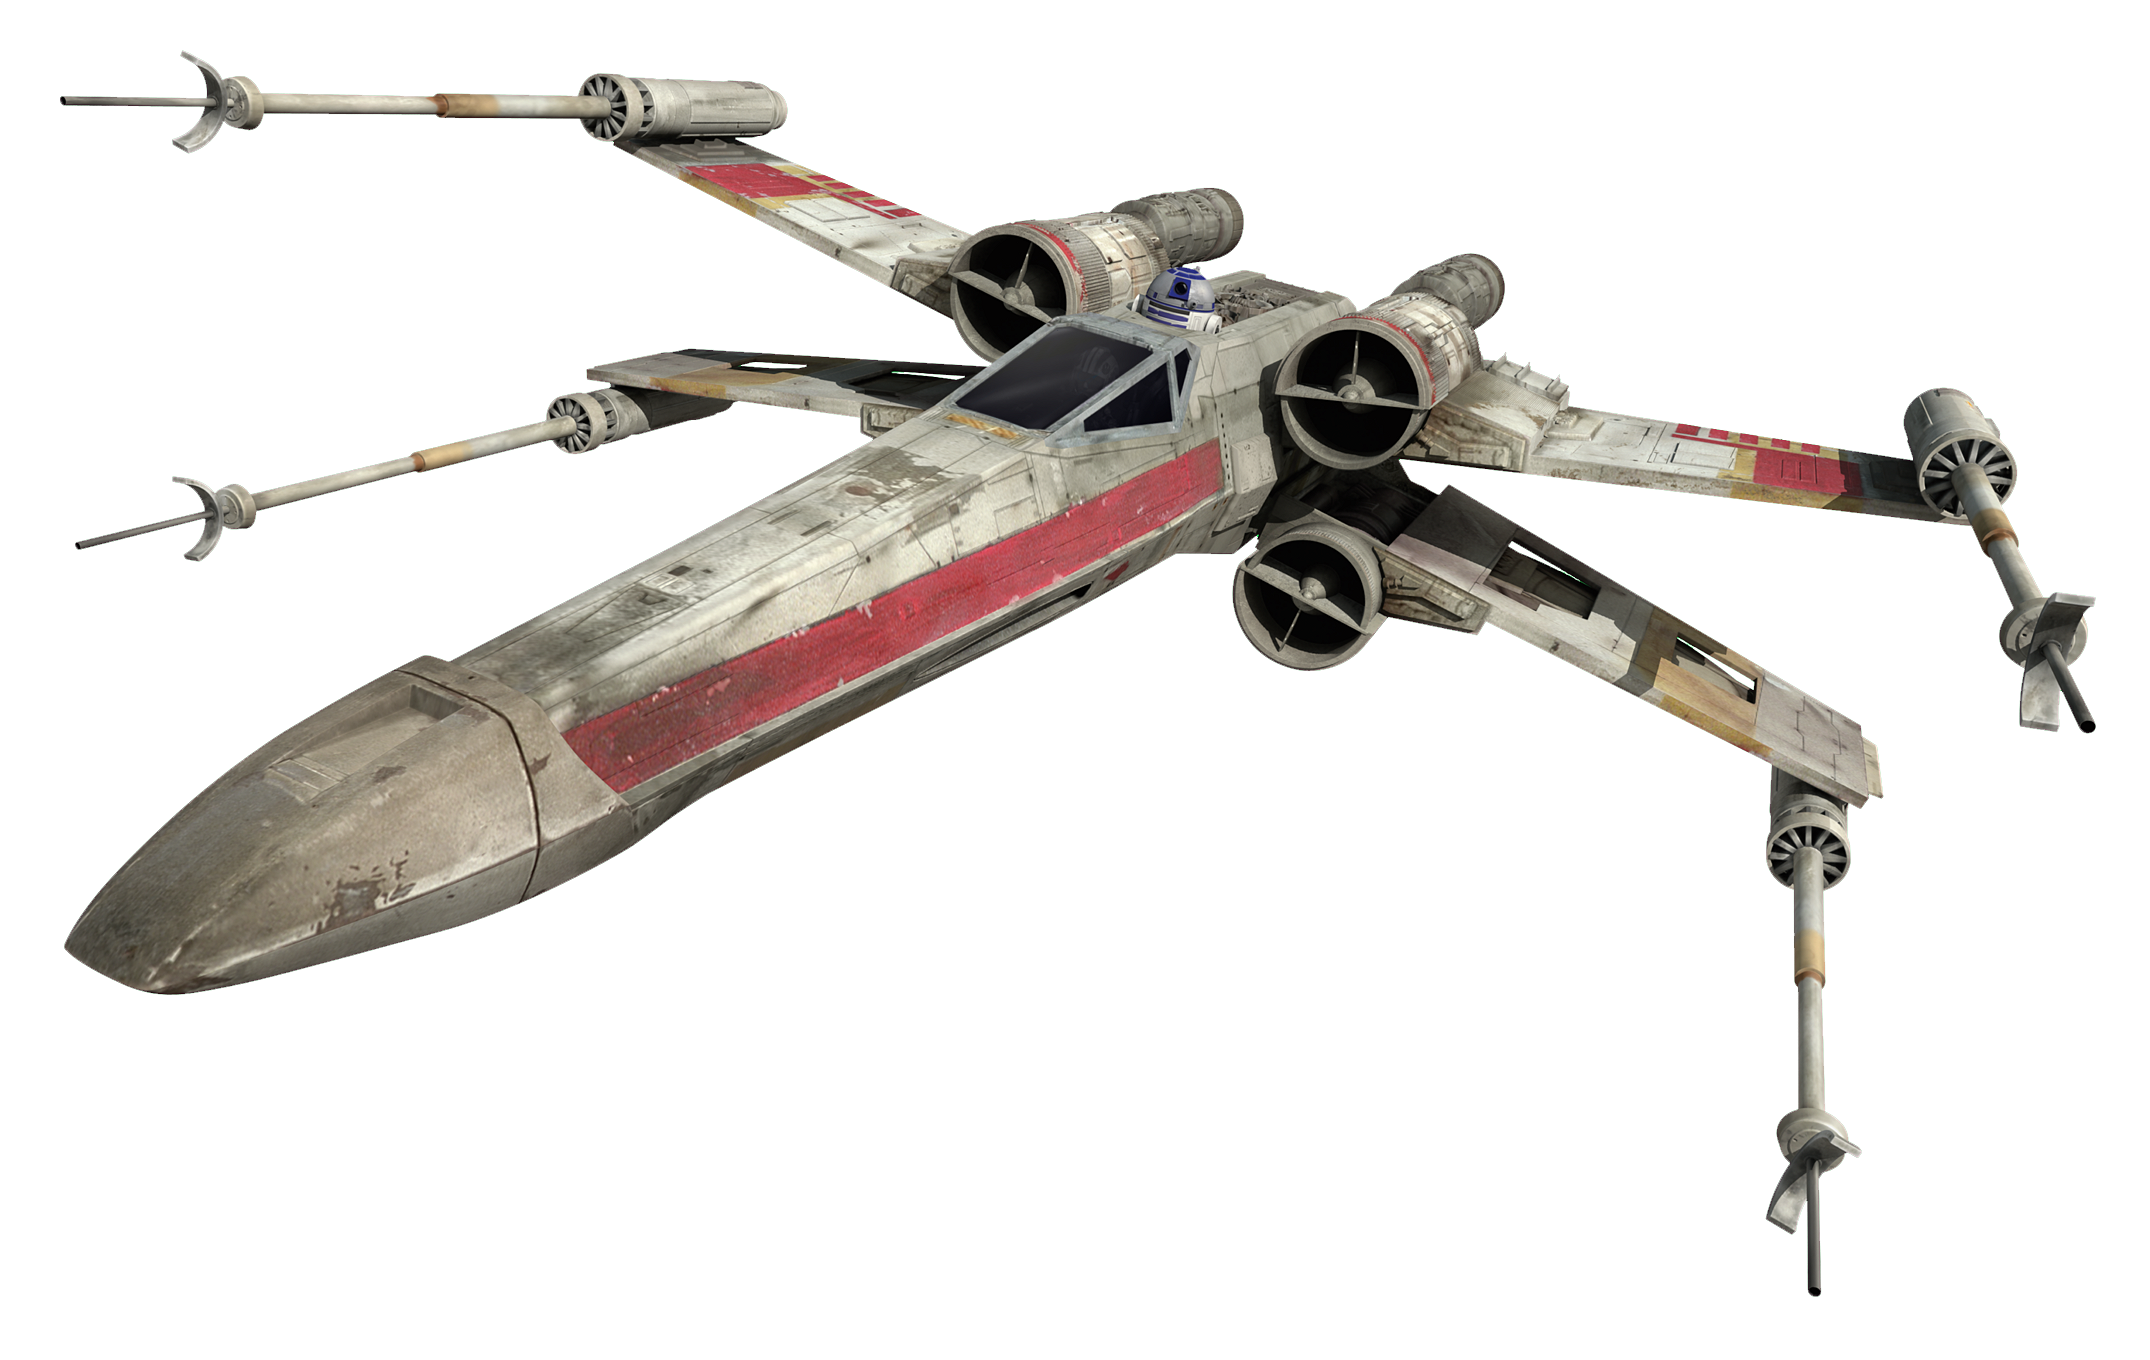 65 X-wing starfighterX Wing Png